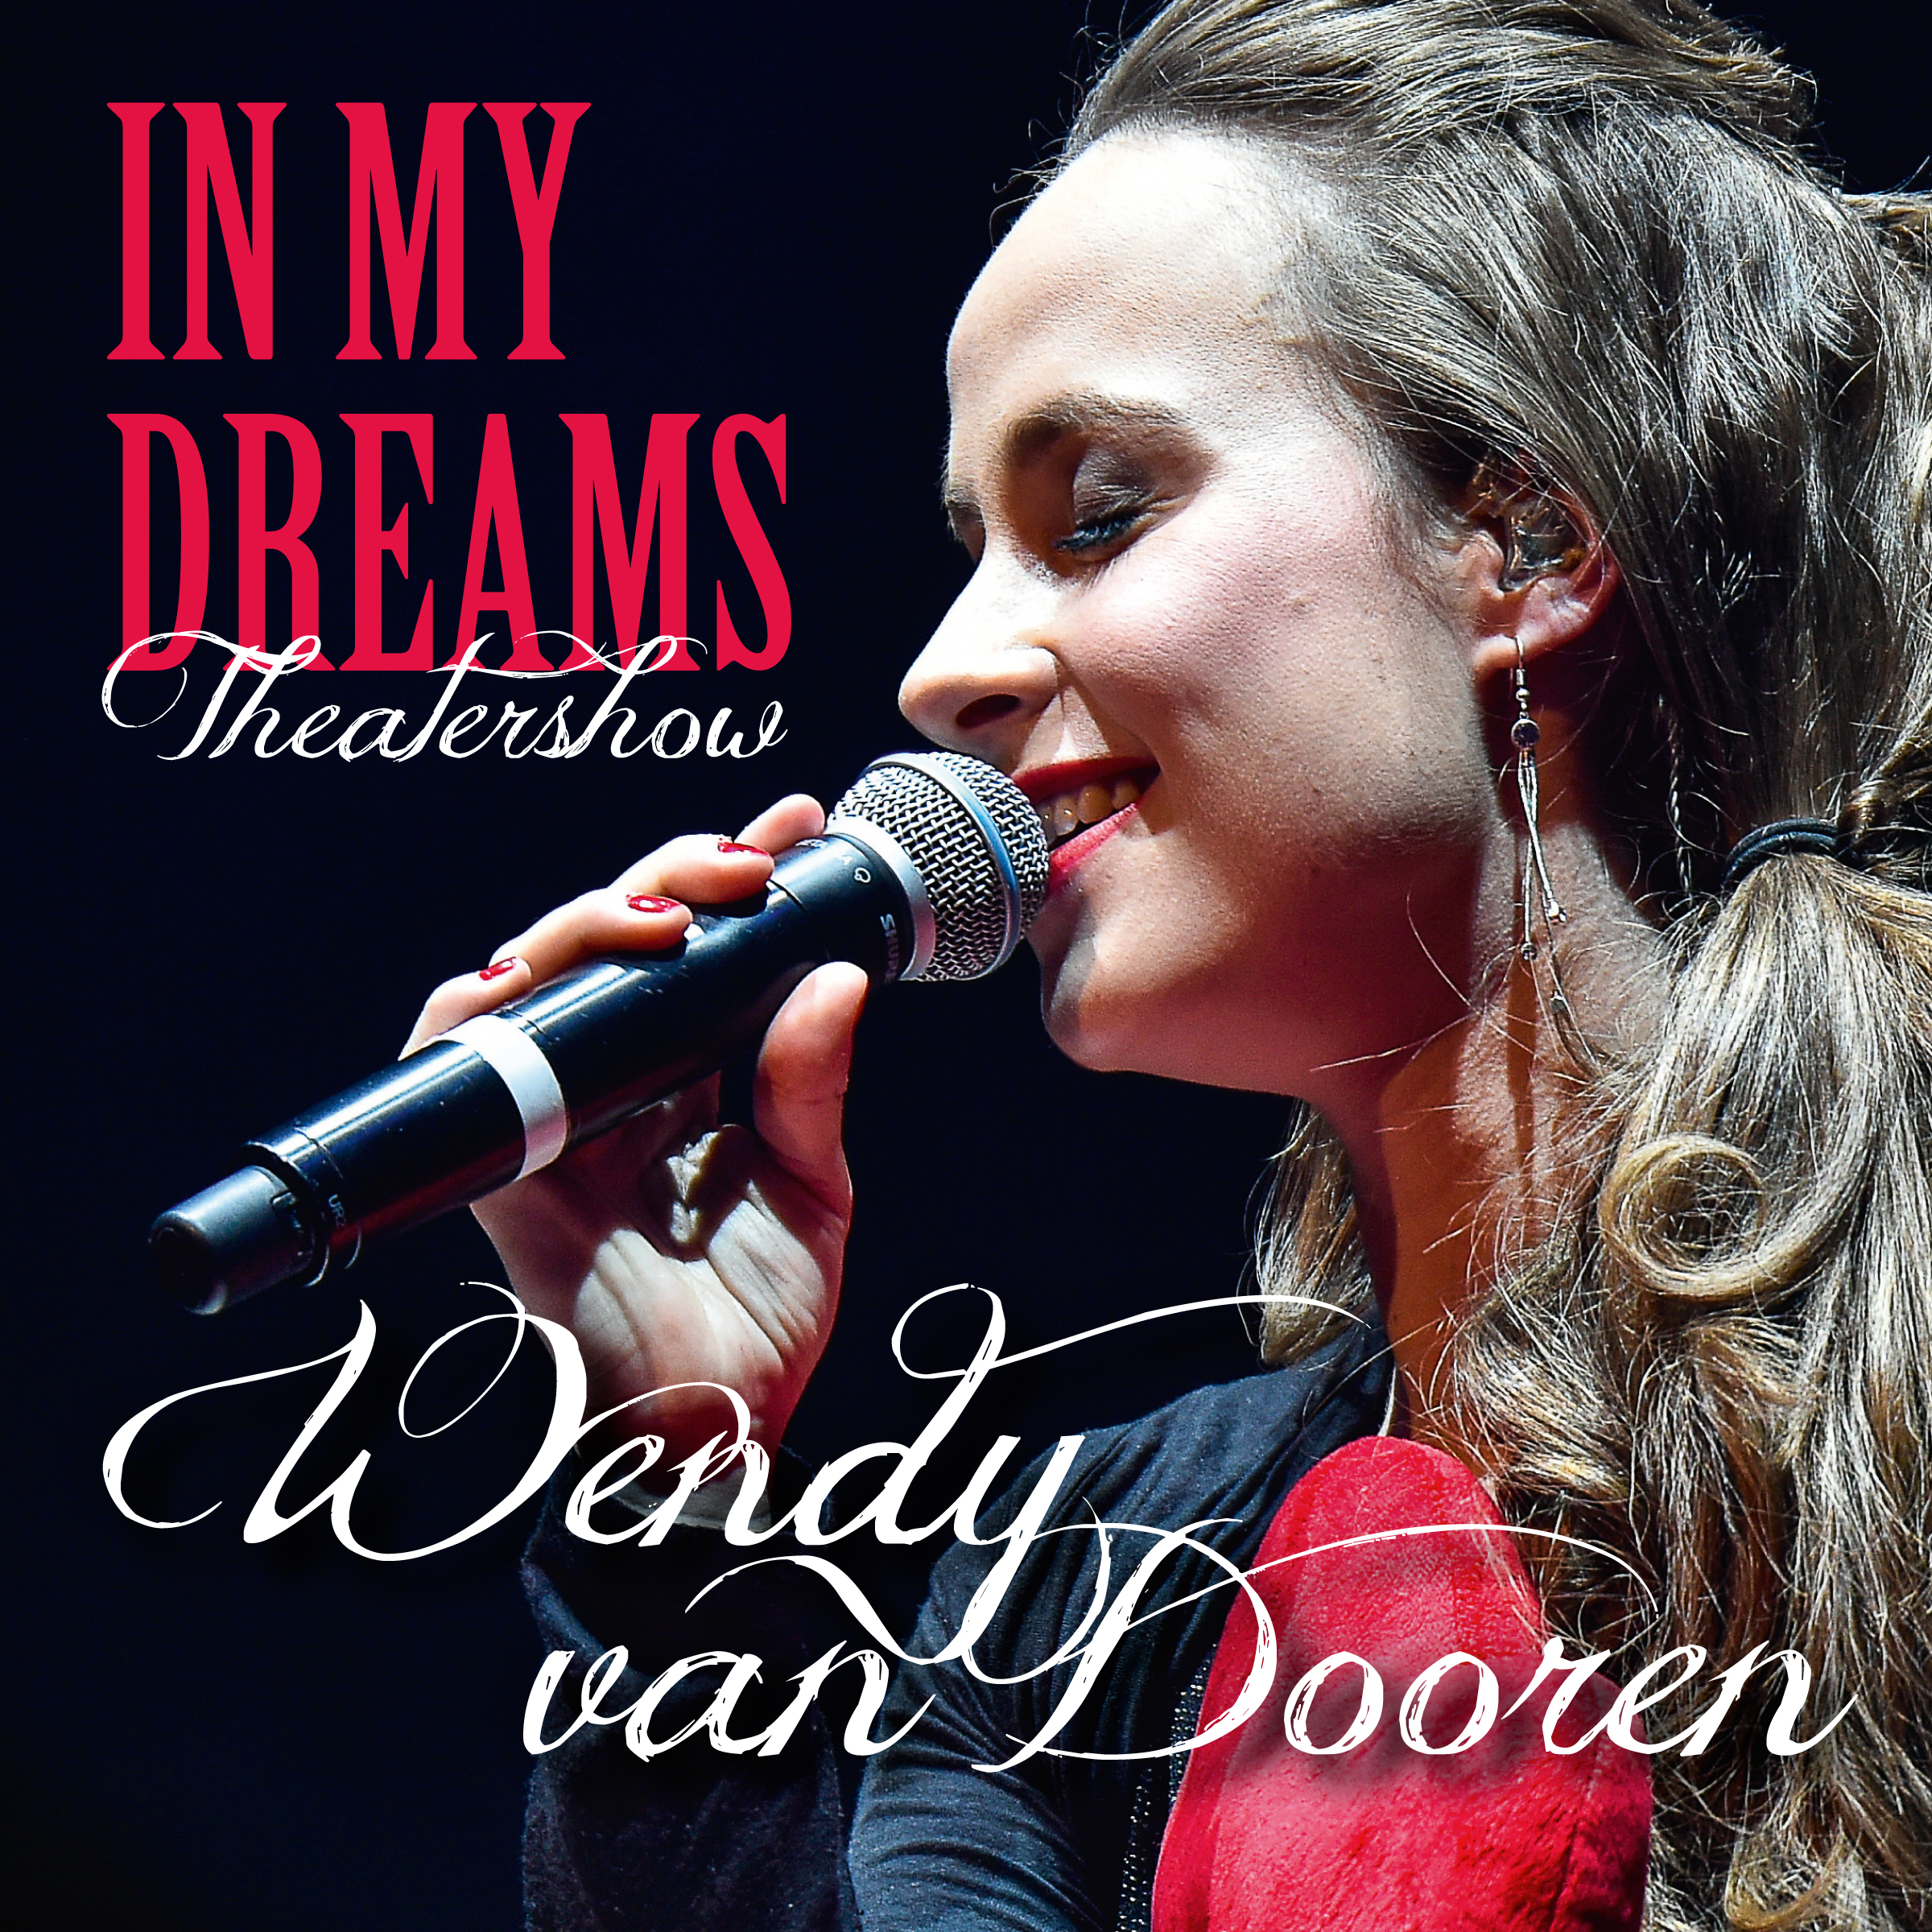 DVD 'In my dreams'